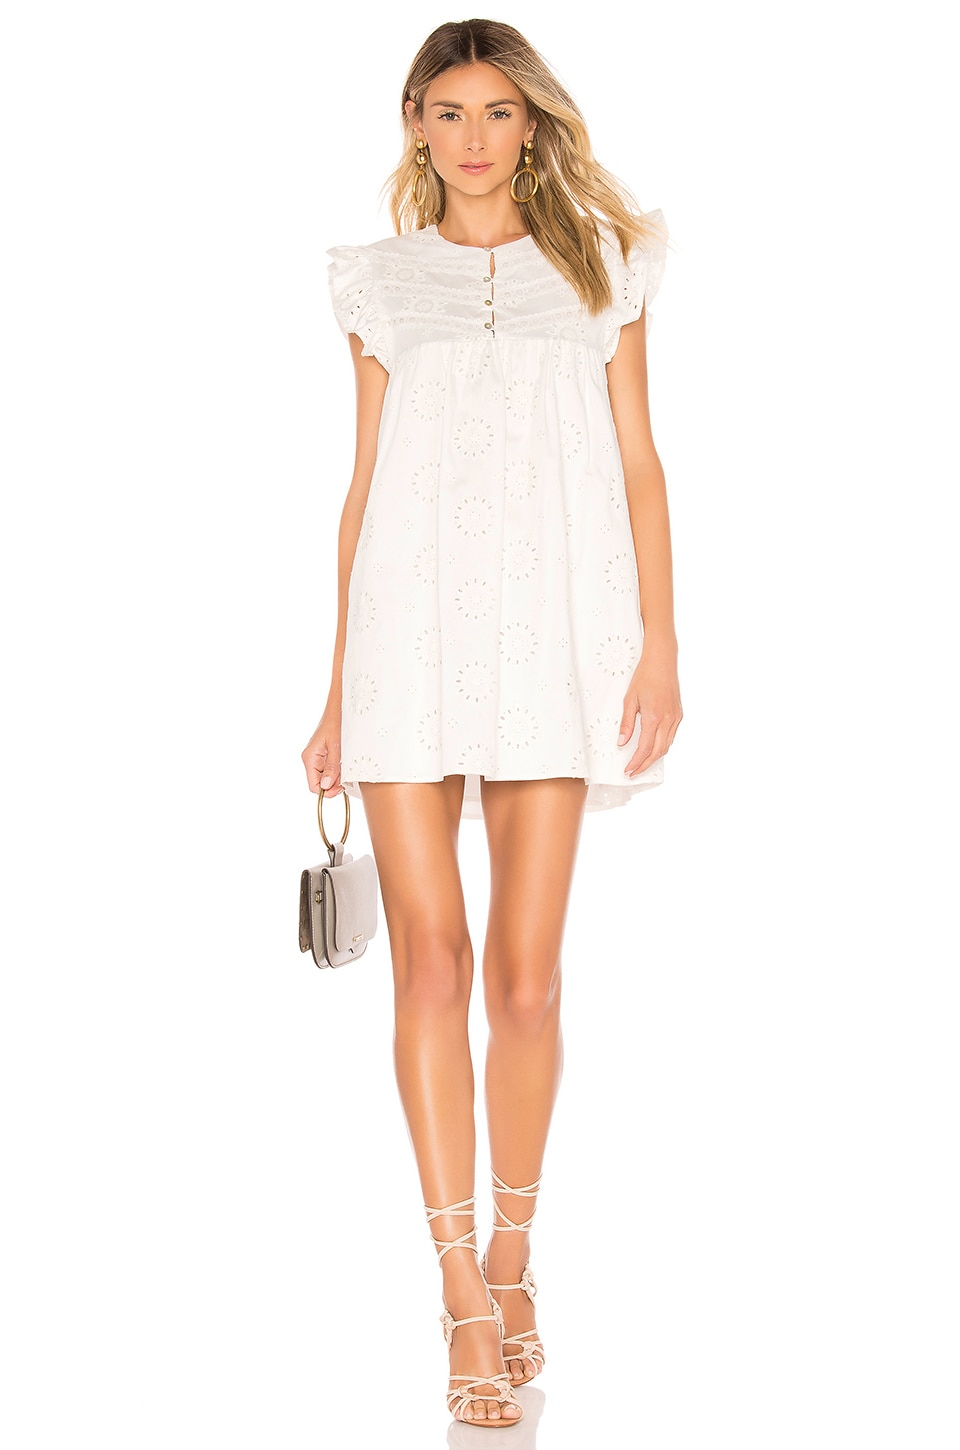 Tularosa Hill Dress in White